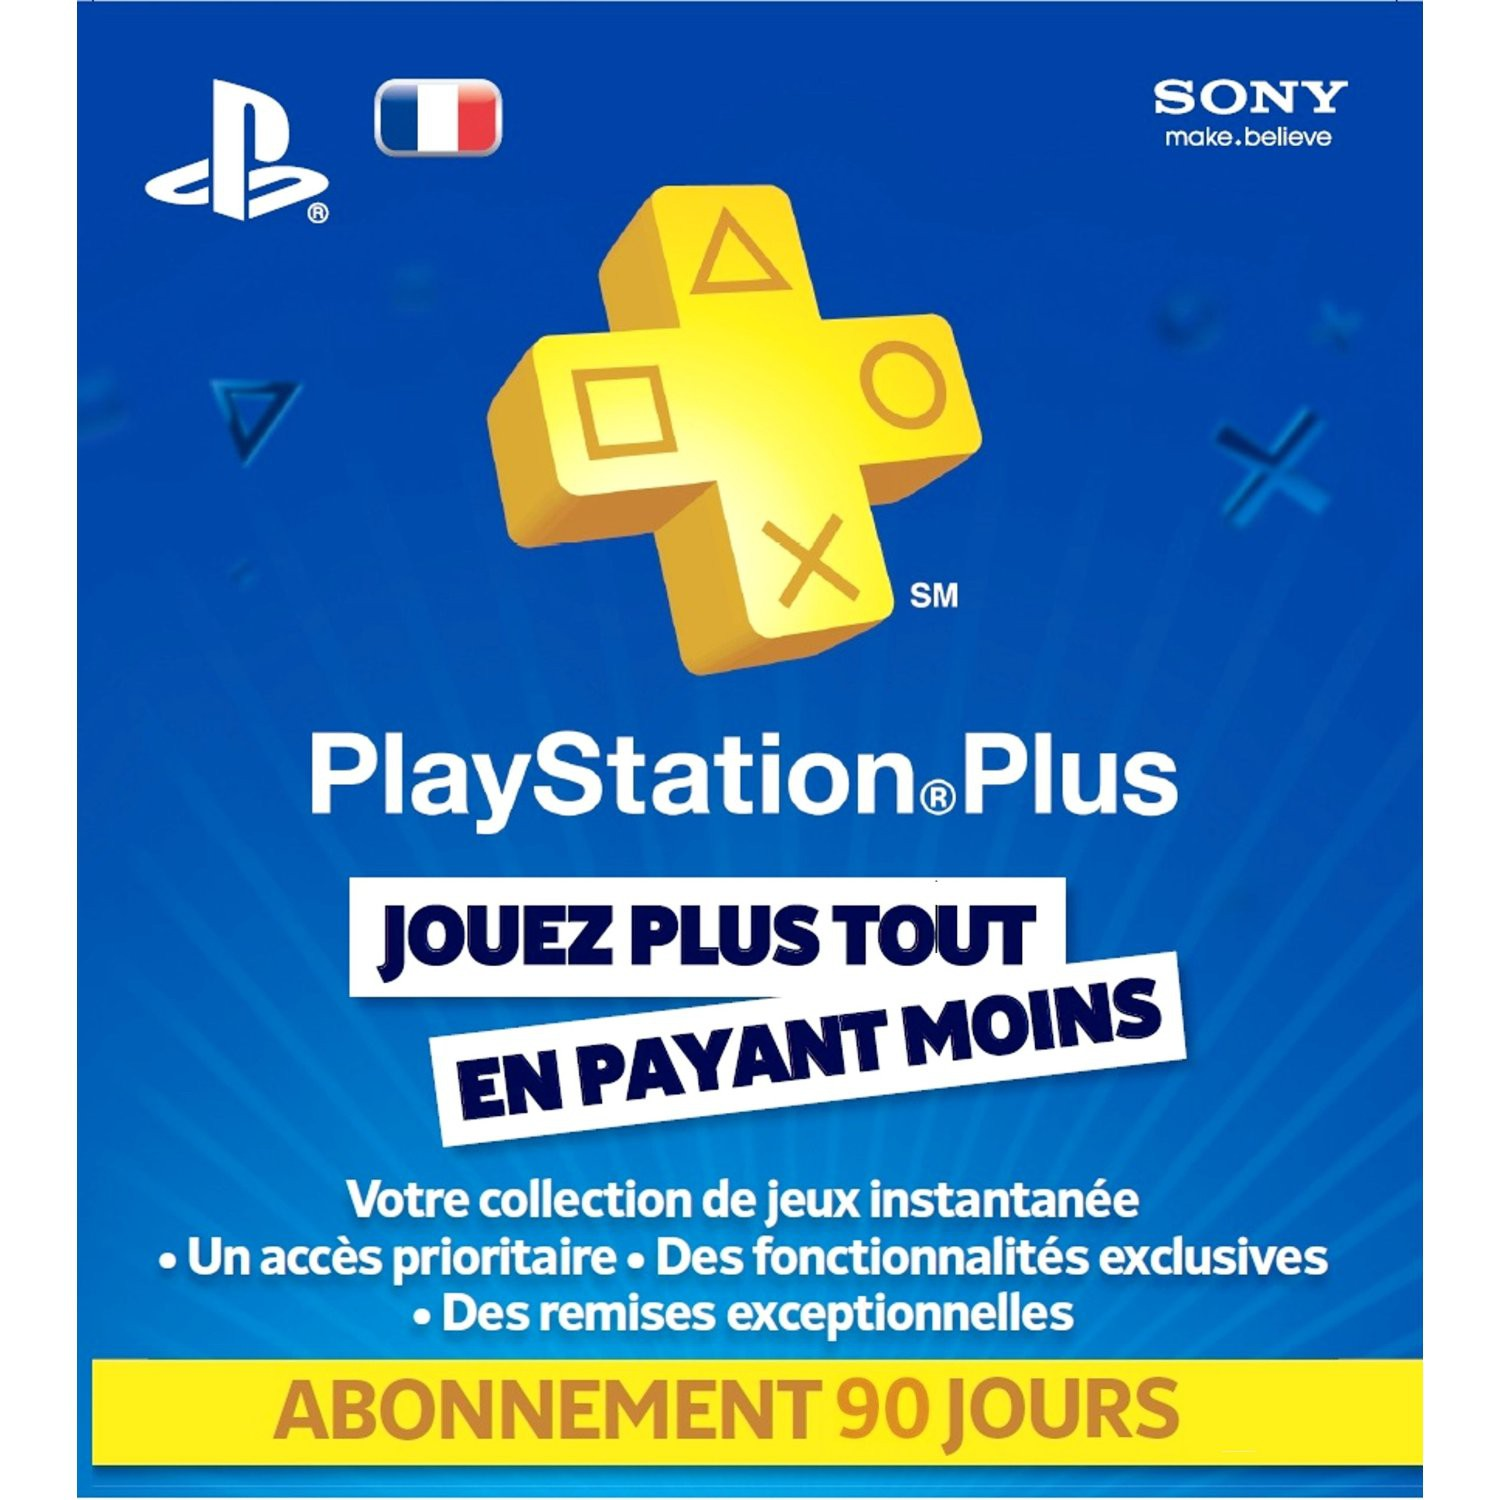 Image1 de [Infos] Le PlayStation Plus a sa carte